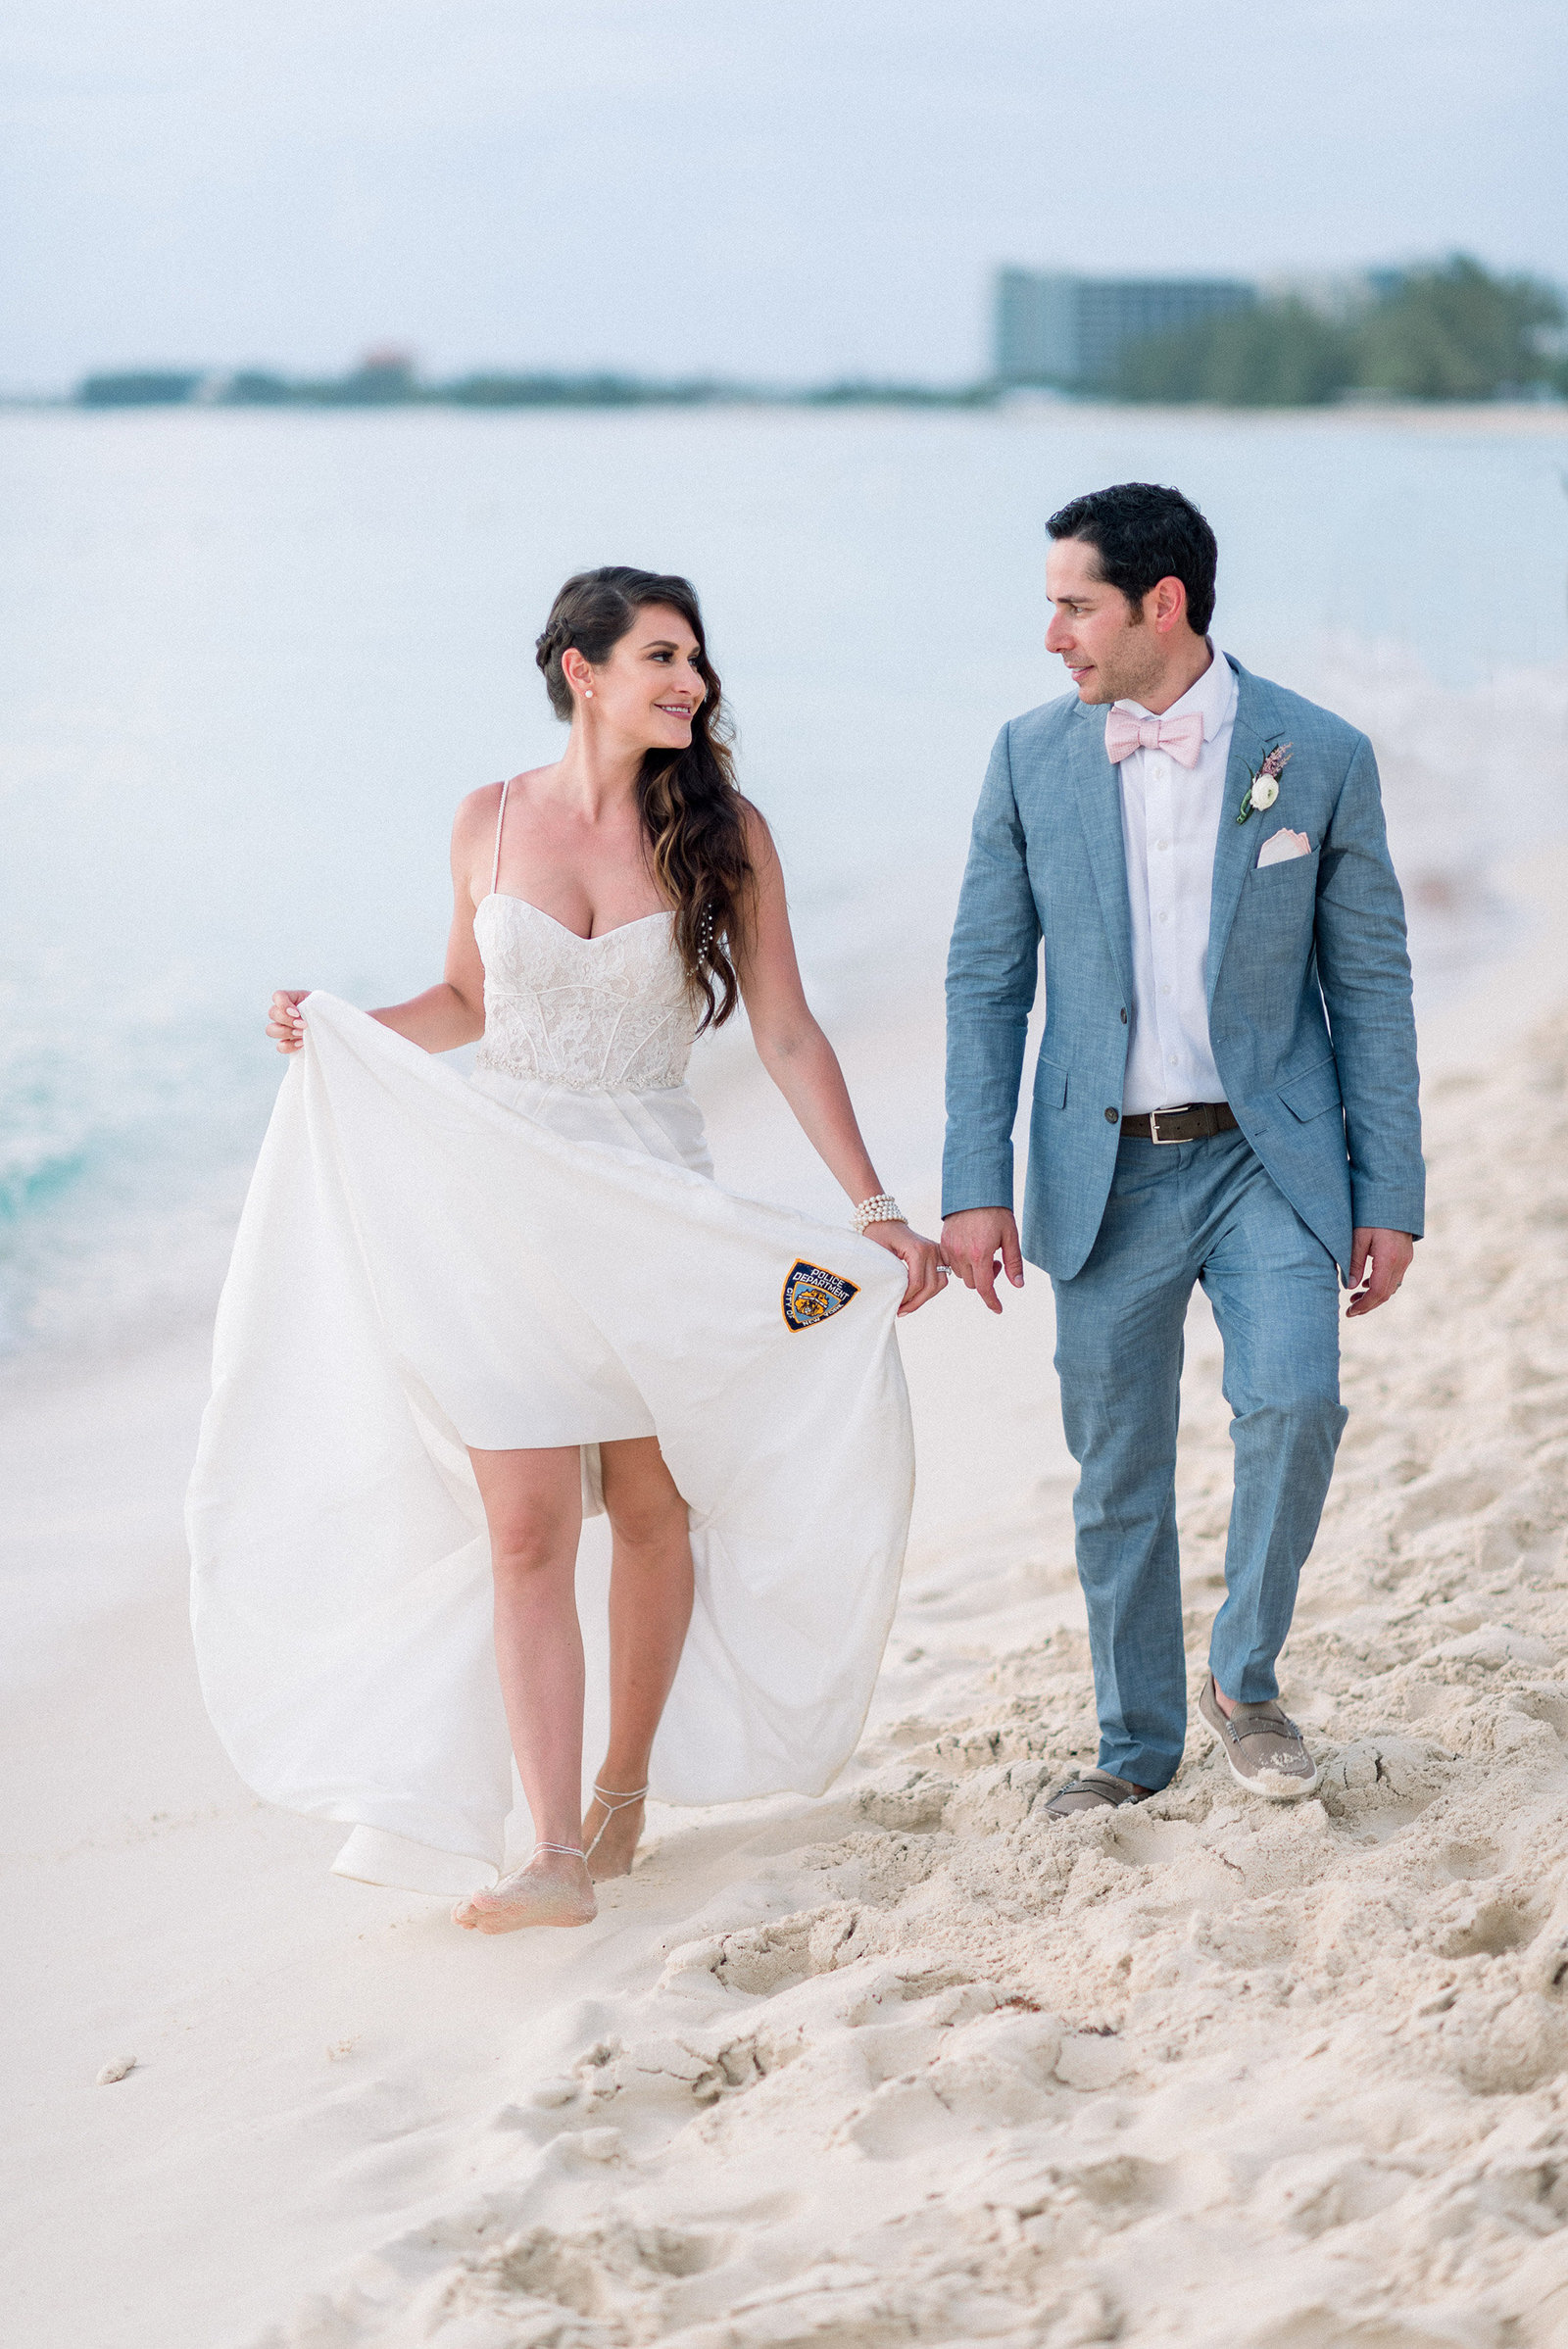 20180512-Pura-Soul-Photo-Ritz-Grand-Cayman-Wedding-119